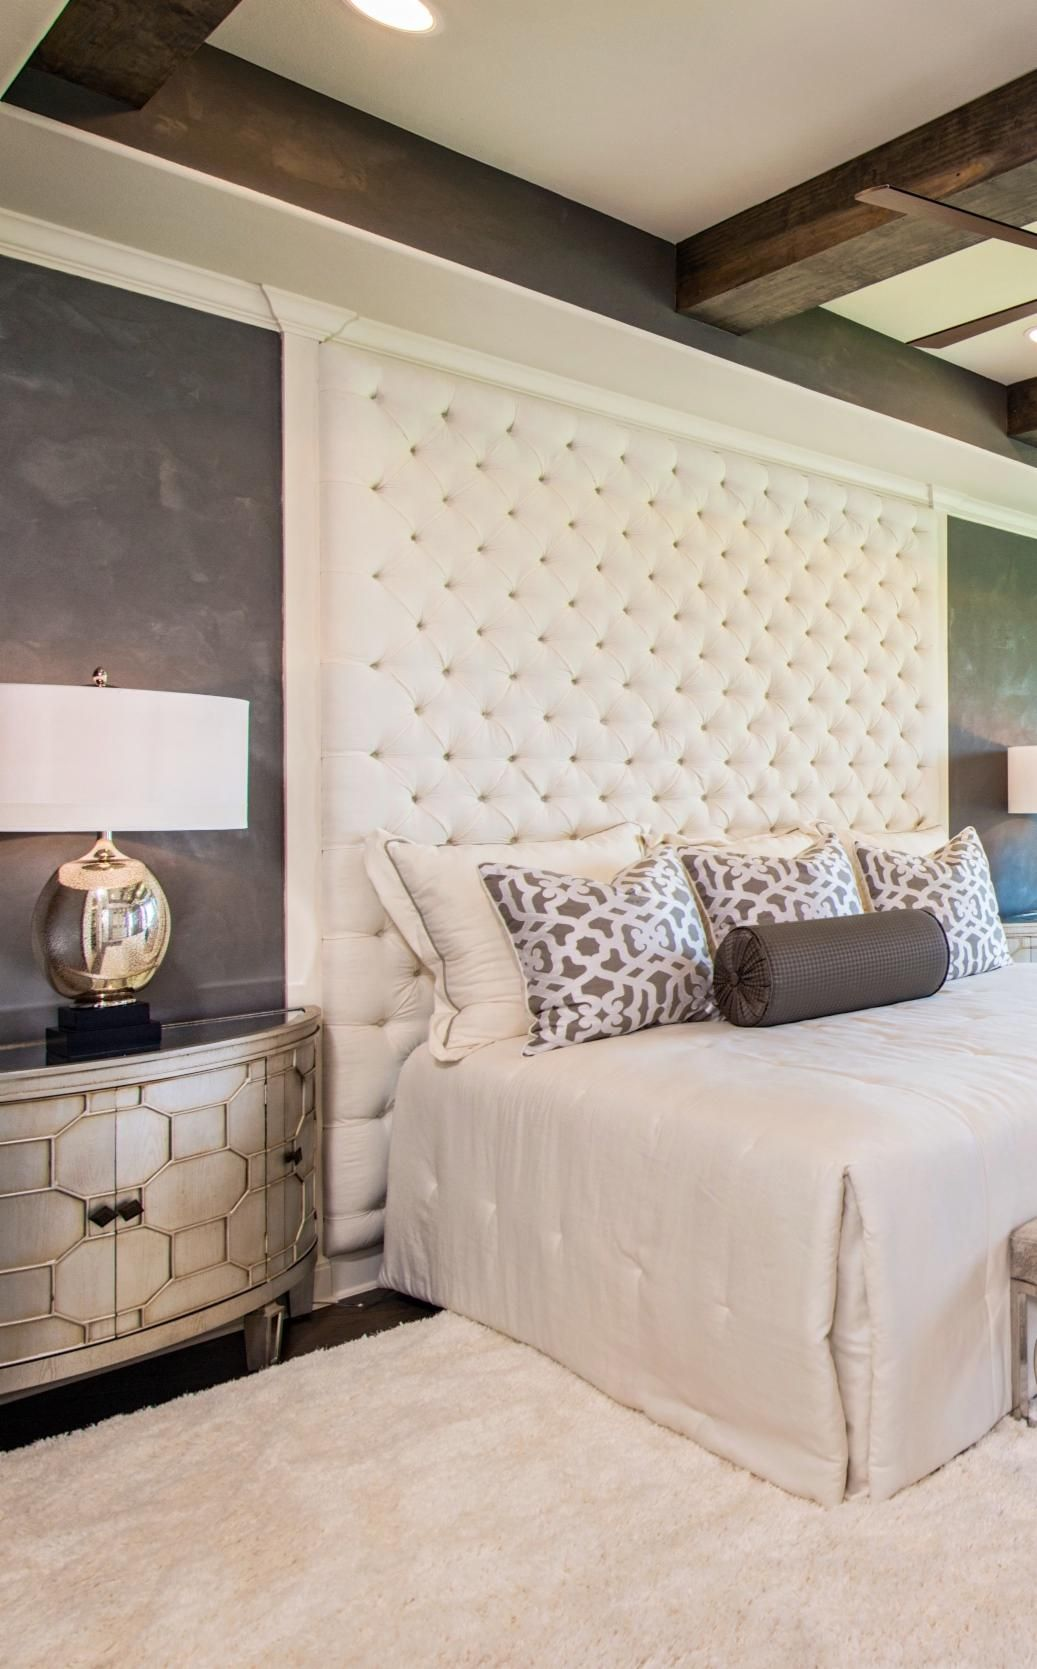 Say hello to your master bedroom summer